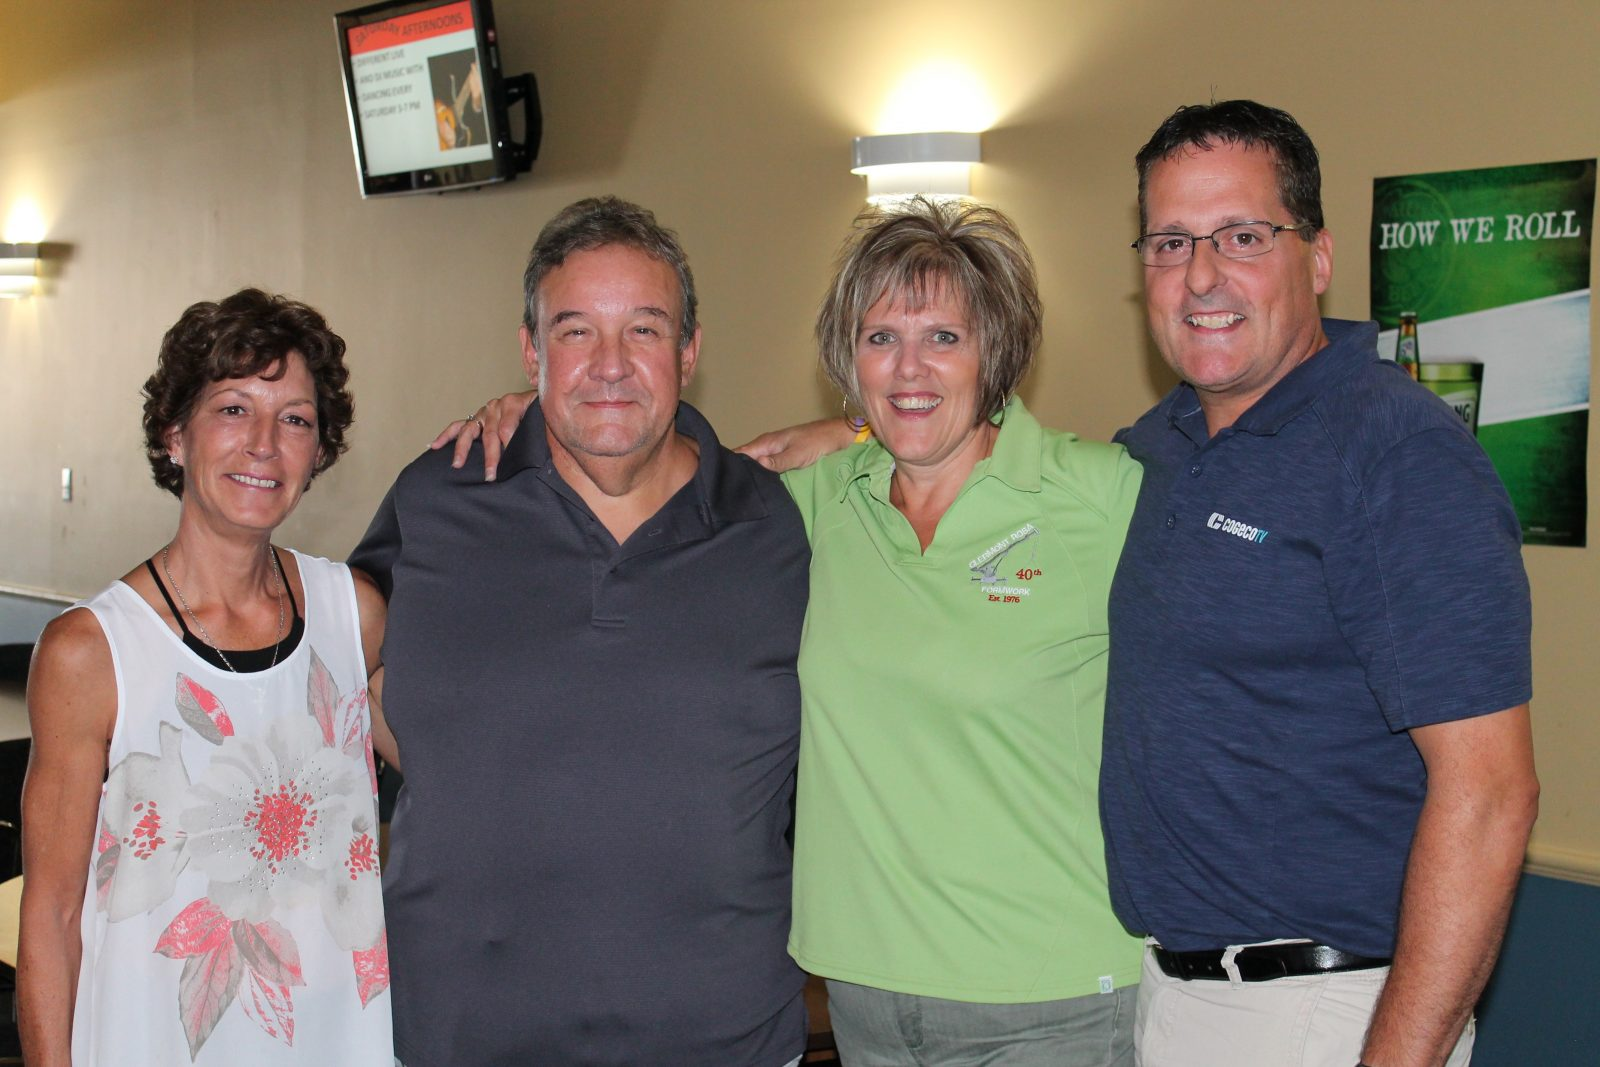 Domtar Reunion and Fundraiser Set to Re-Kindle Friendships